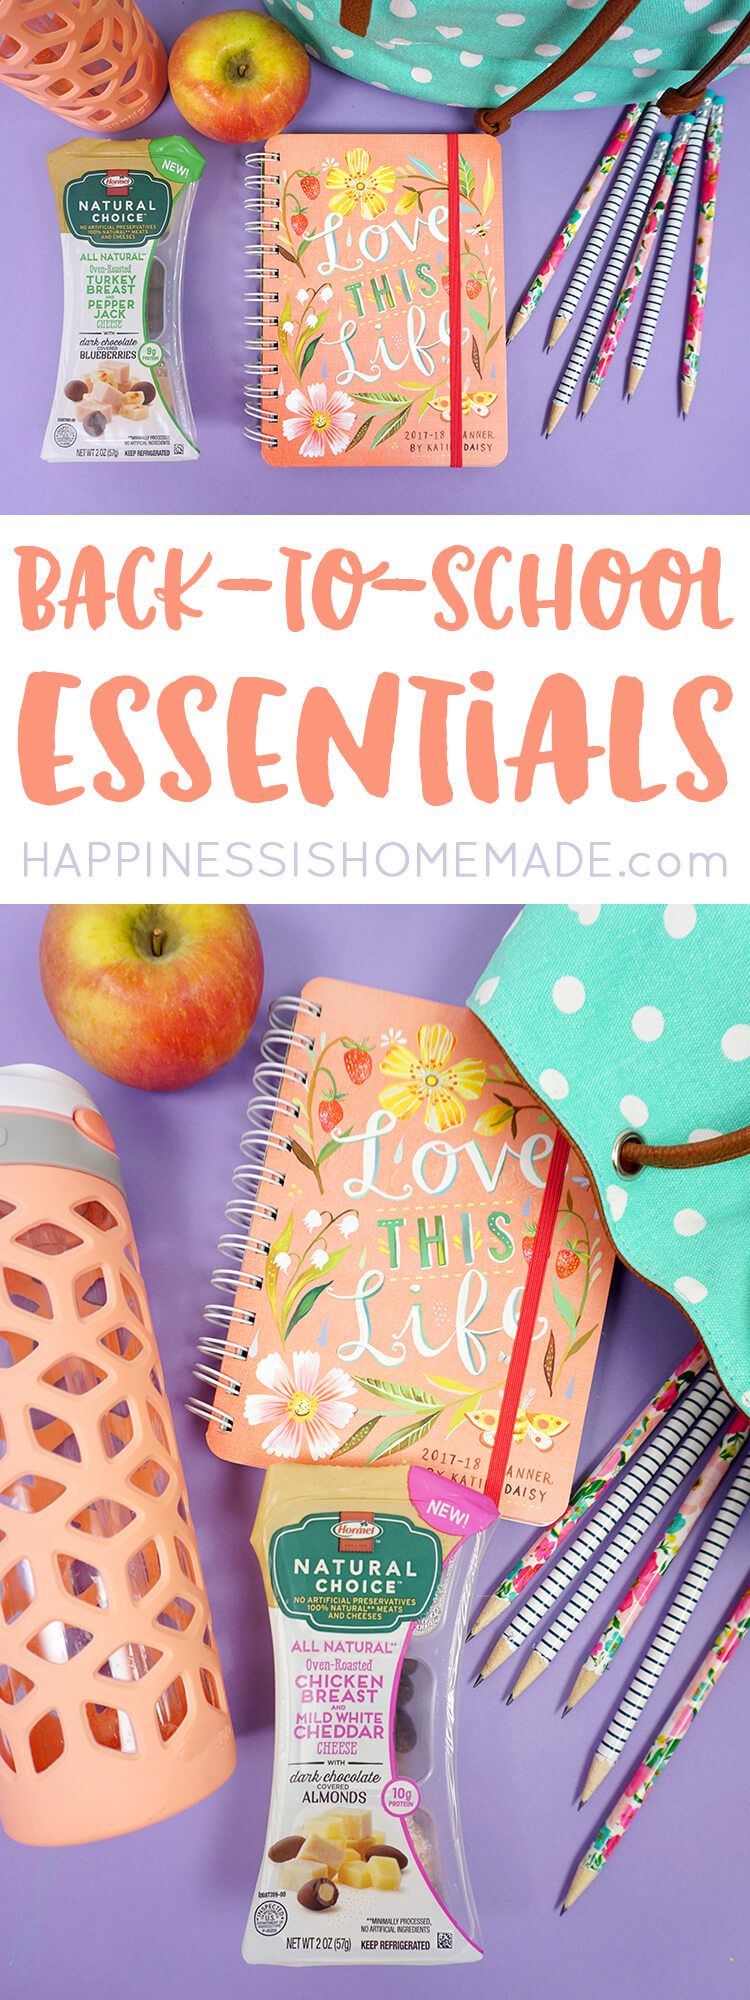 Must-Have Back-to-School Essentials